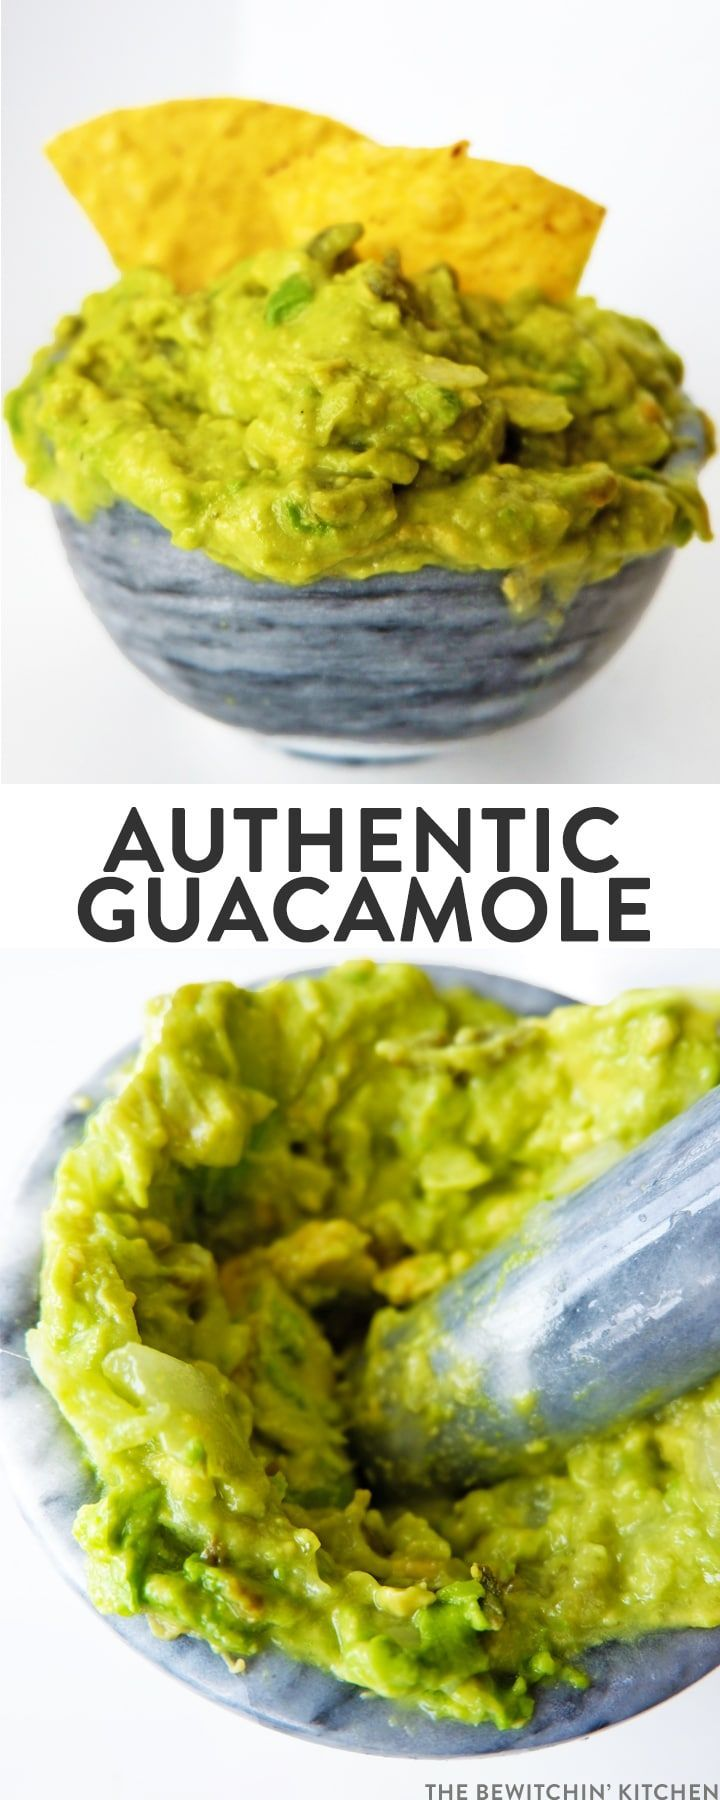 This authentic guacamole recipe was brought back from my recent Mexico travels. This clean eating, healthy snack recipe is whole30 and paleo plus its only 5 ingredients! via @RandaDerkson